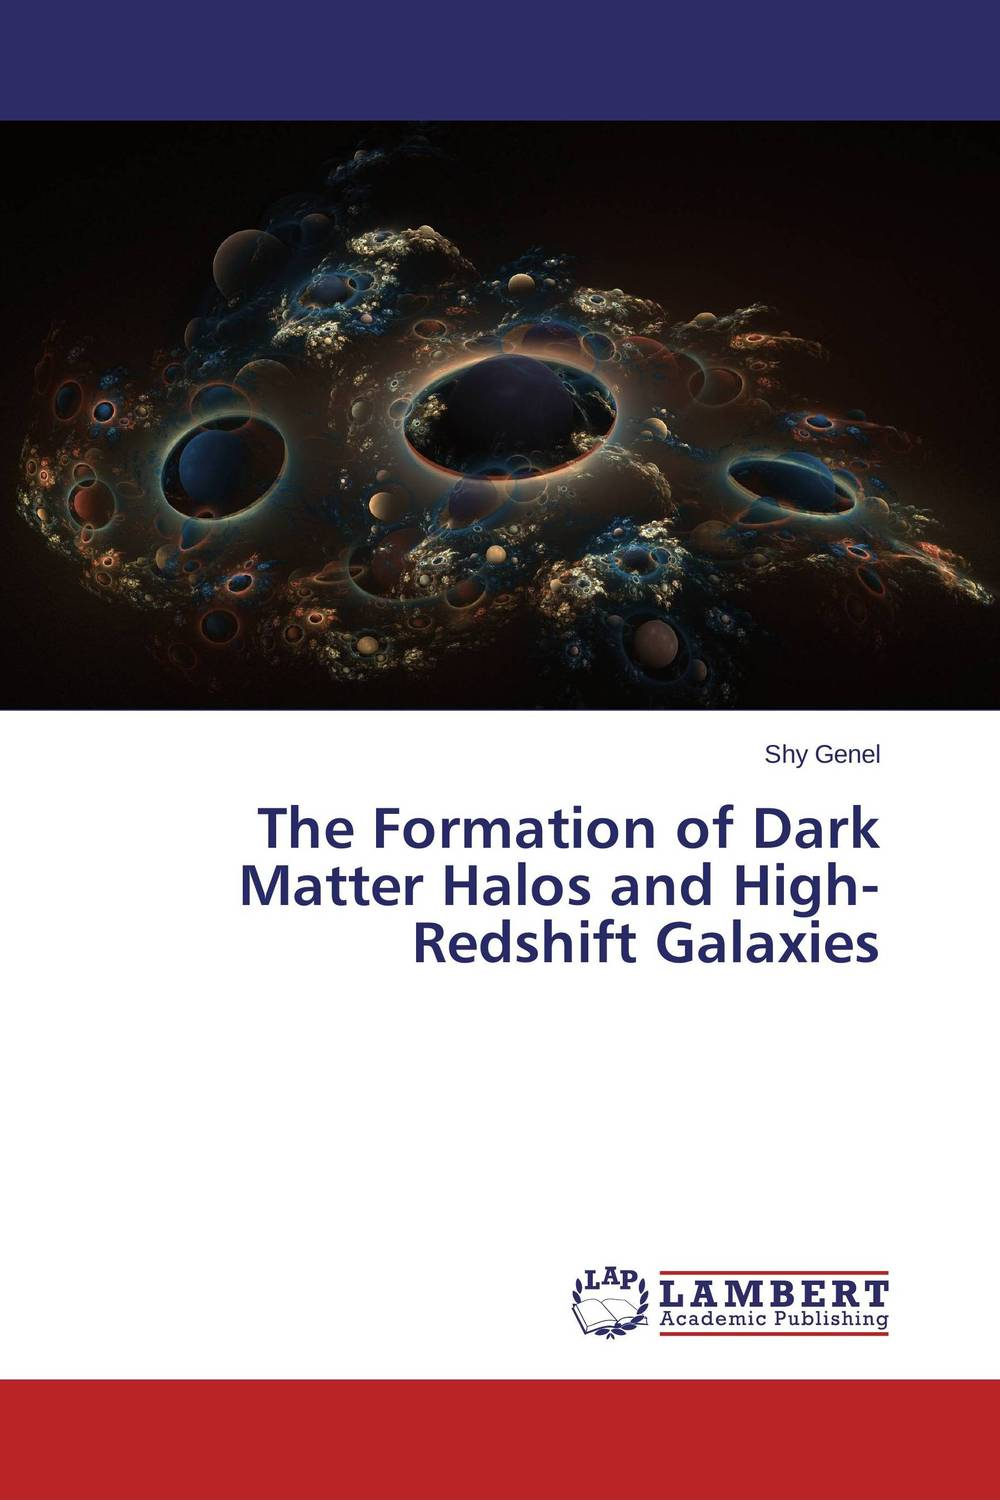 The Formation of Dark Matter Halos and High-Redshift Galaxies